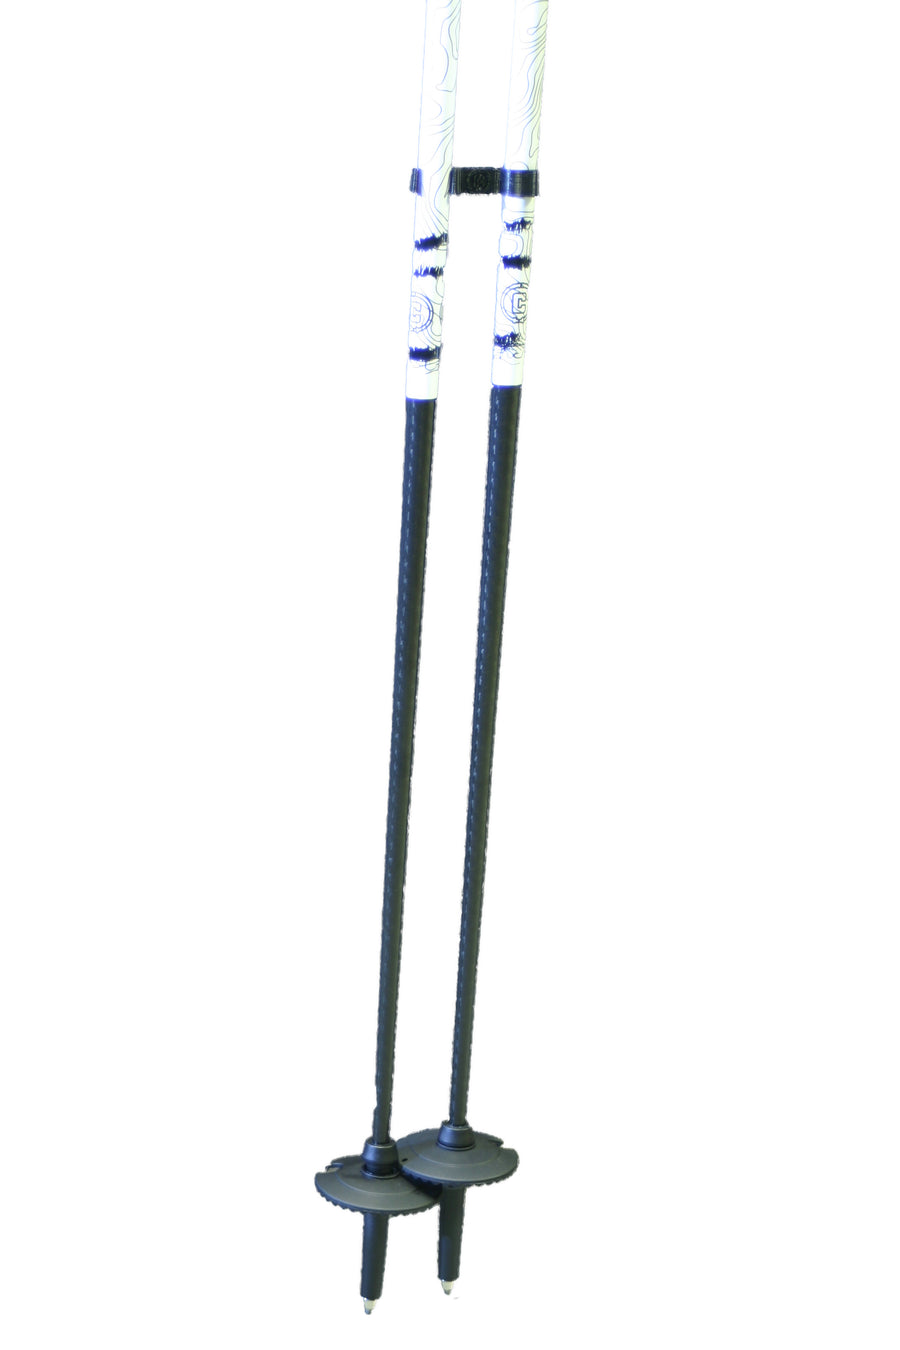 TRAJECTORY Carbon Ski Pole - Black